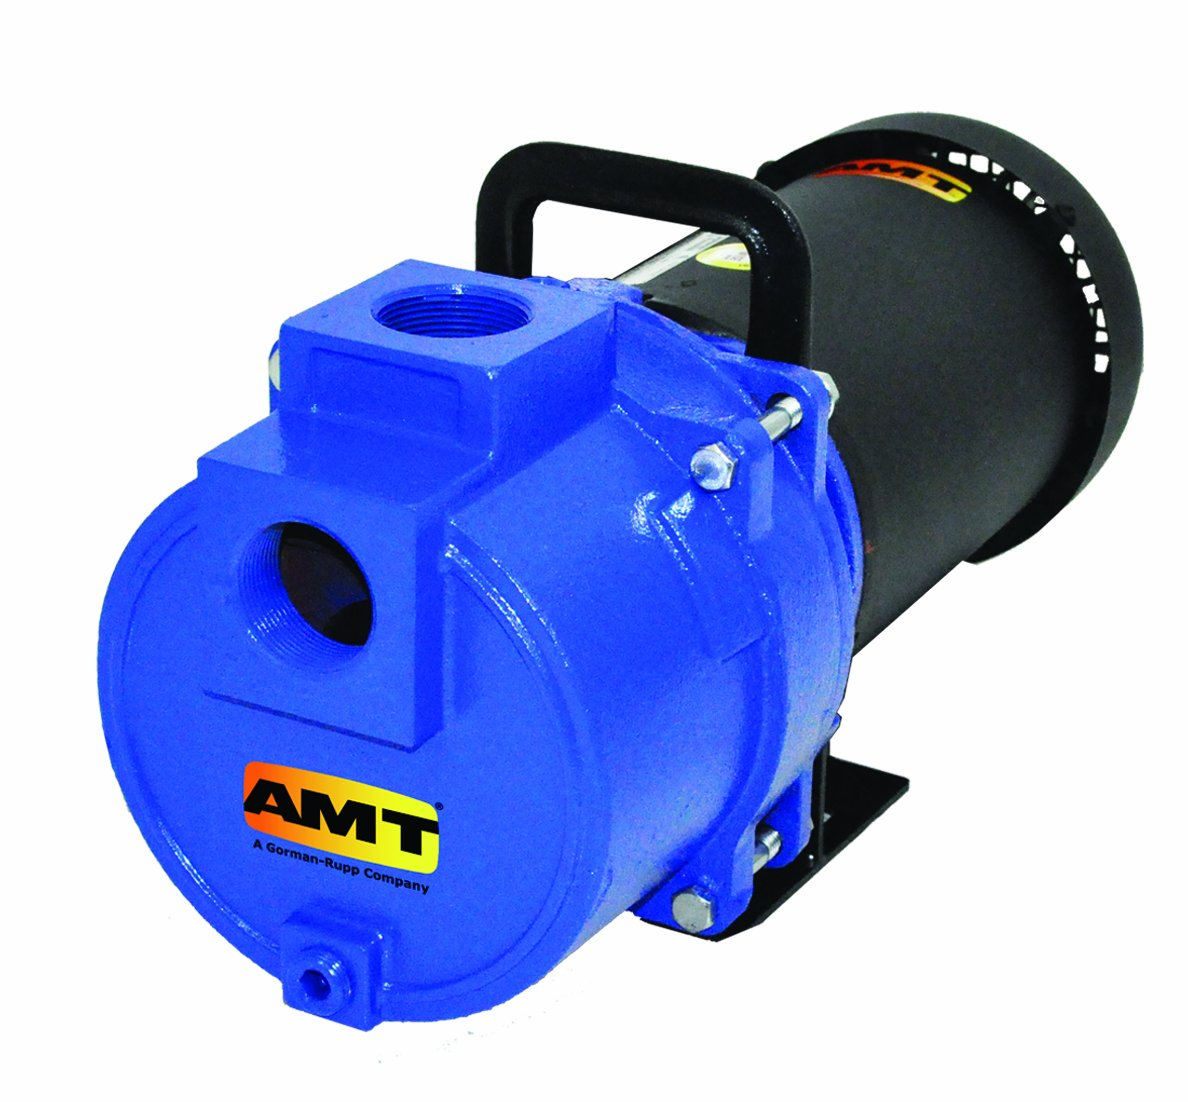 AMT 379D-95 1-1/2'' NPT Cast Iron Sprinkler/Booster Pump, 157gpm, 150psi, Buna-N Seal, 3hp